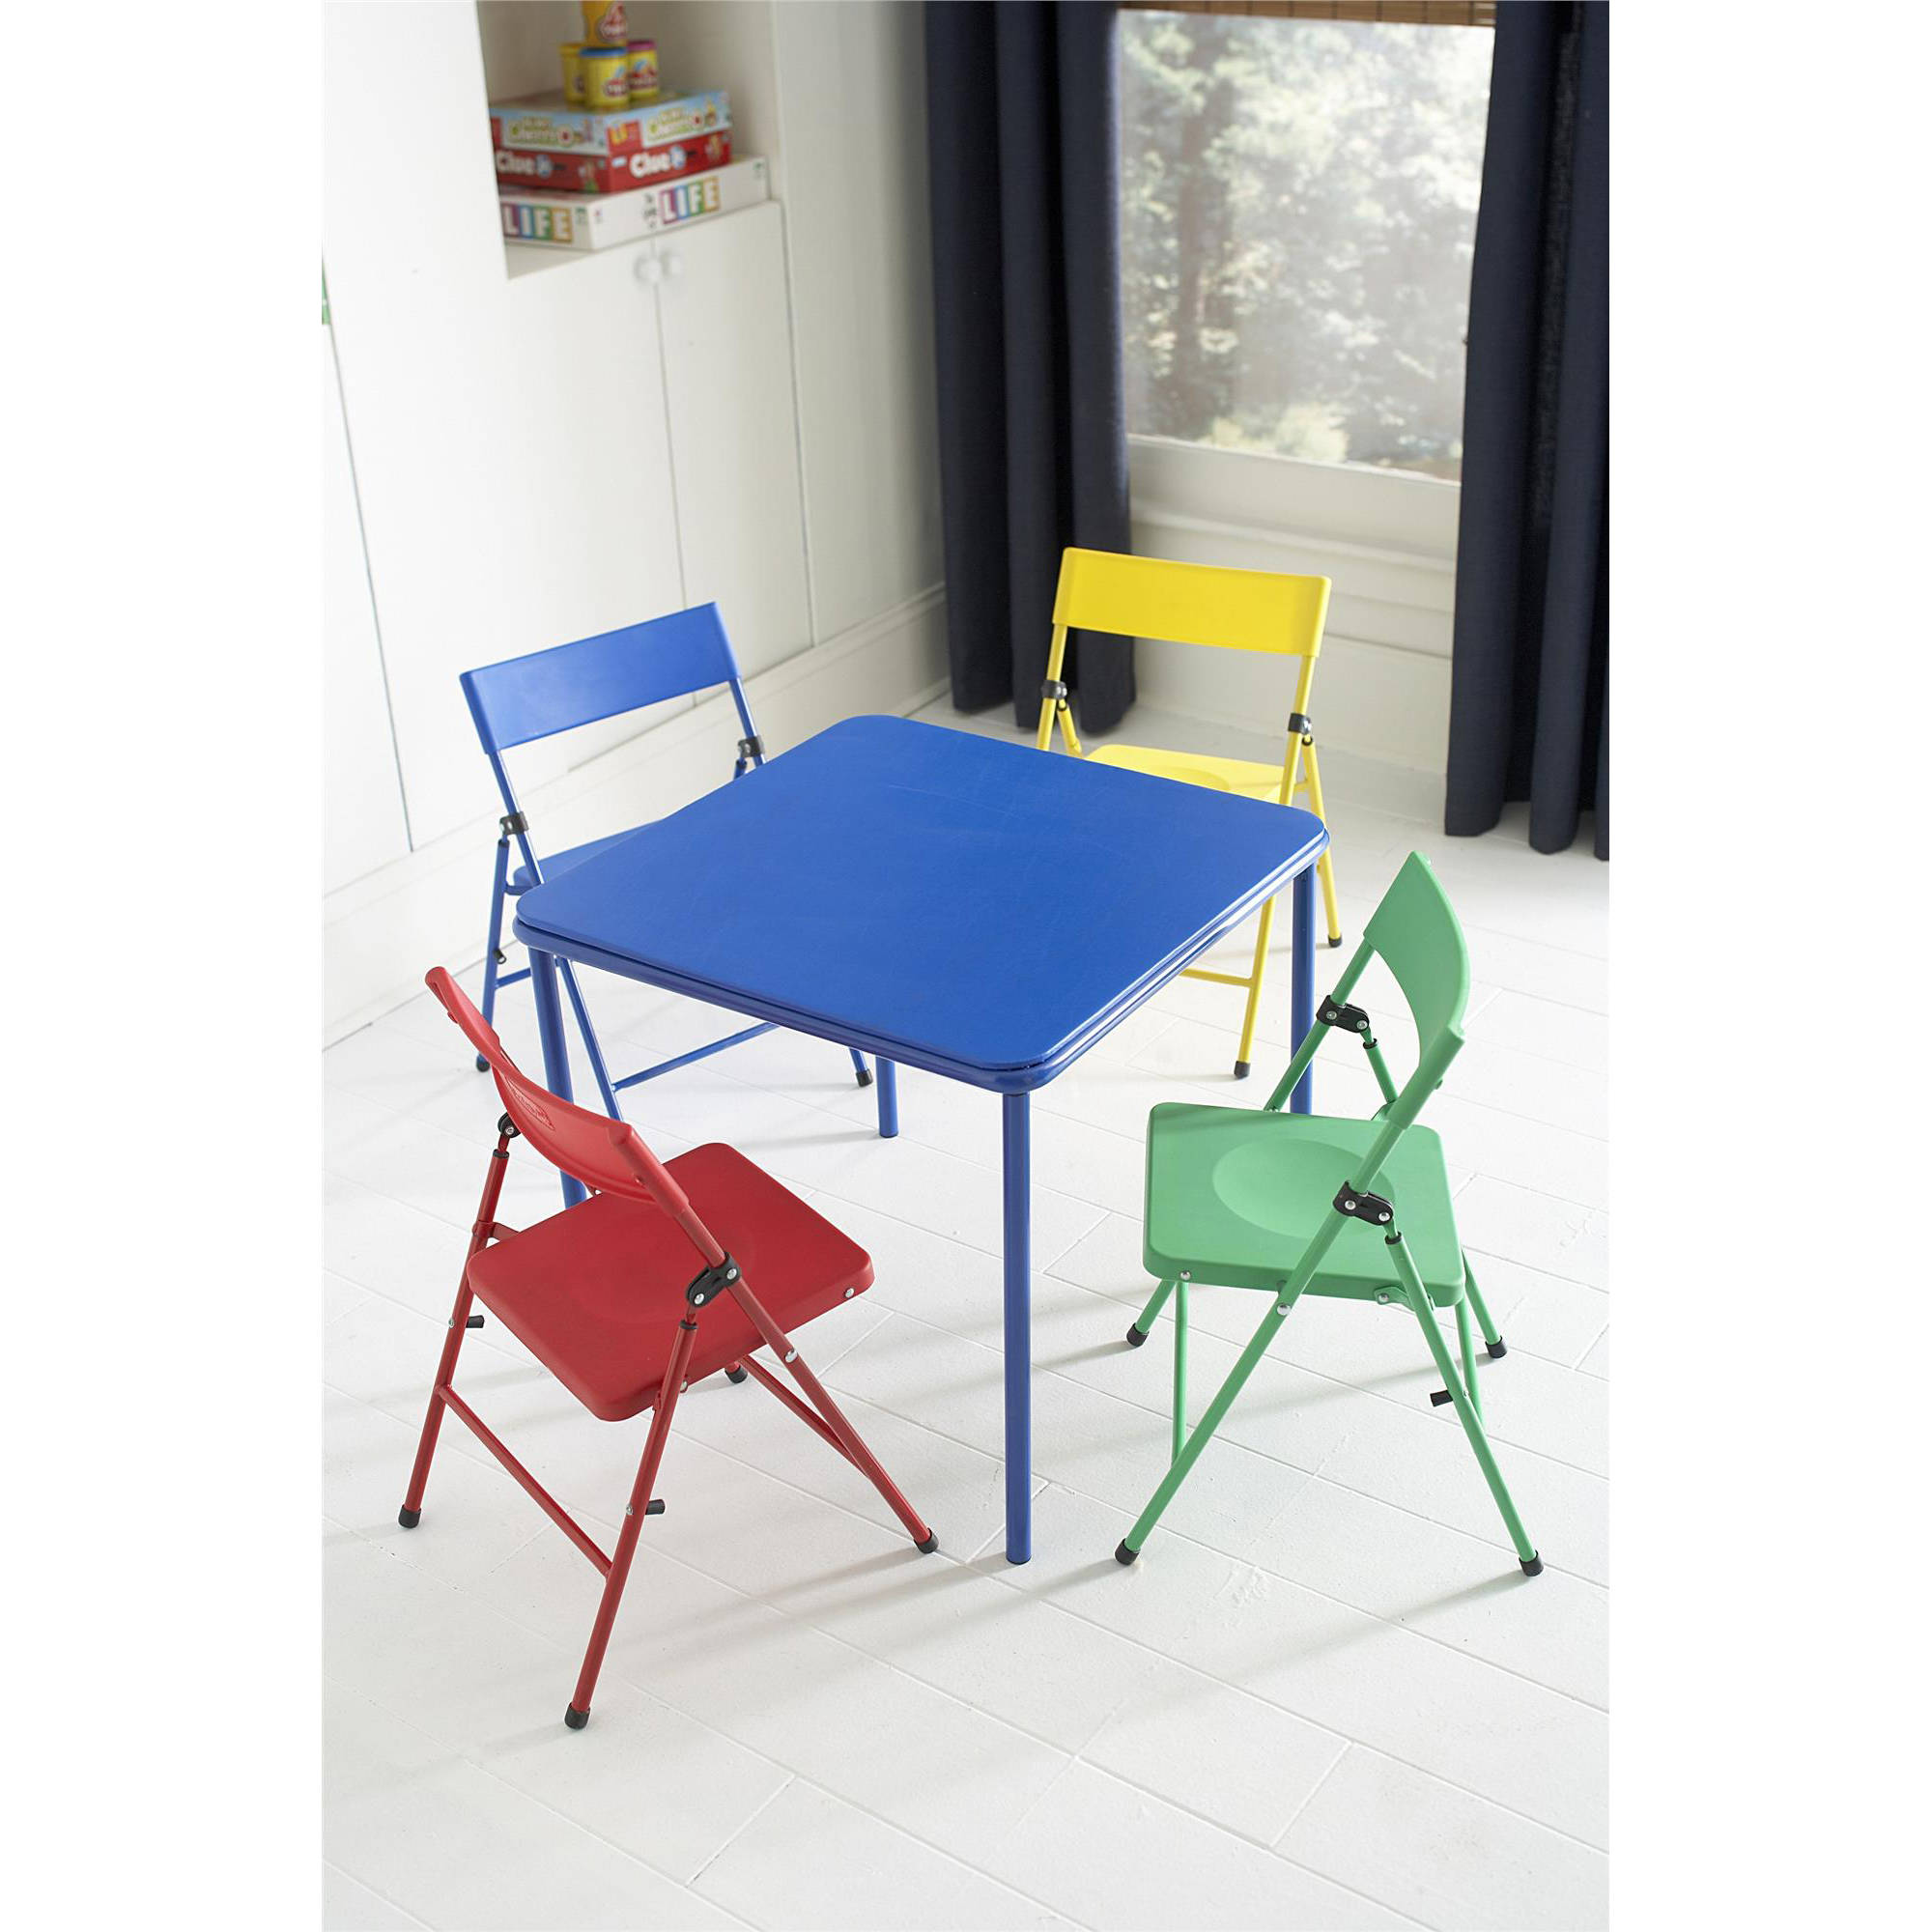 Cosco Kidu0027s 5 Piece Folding Chair and Table Set  sc 1 st  Walmart & Cosco Kidu0027s 5 Piece Folding Chair and Table Set - Walmart.com